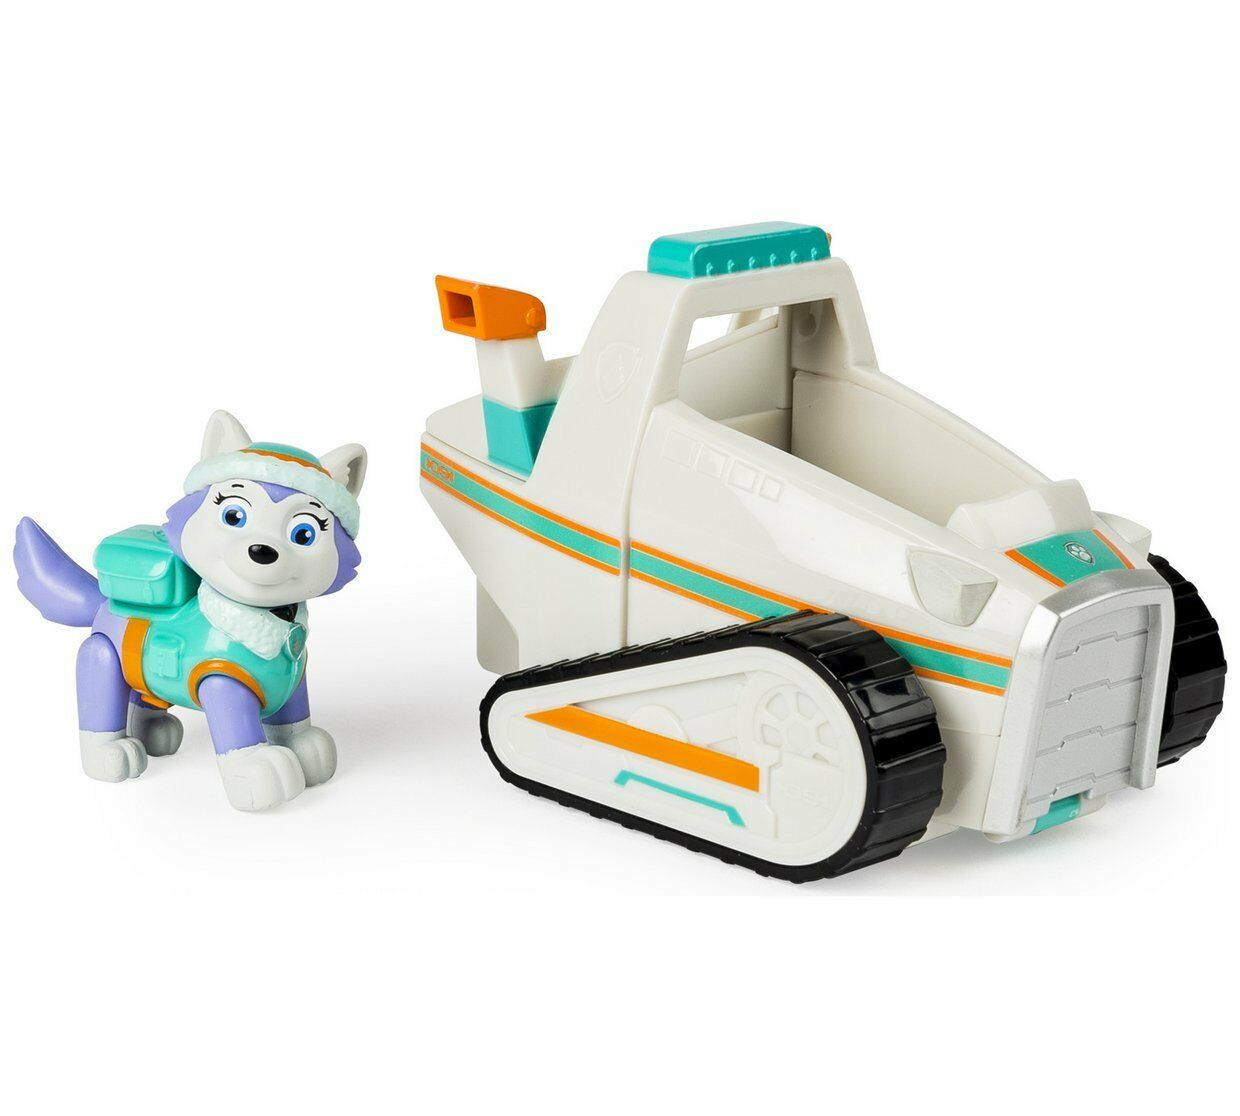 PAW Vehicle & Pup Snowmobile Everest's Patrol 17540zscb71114